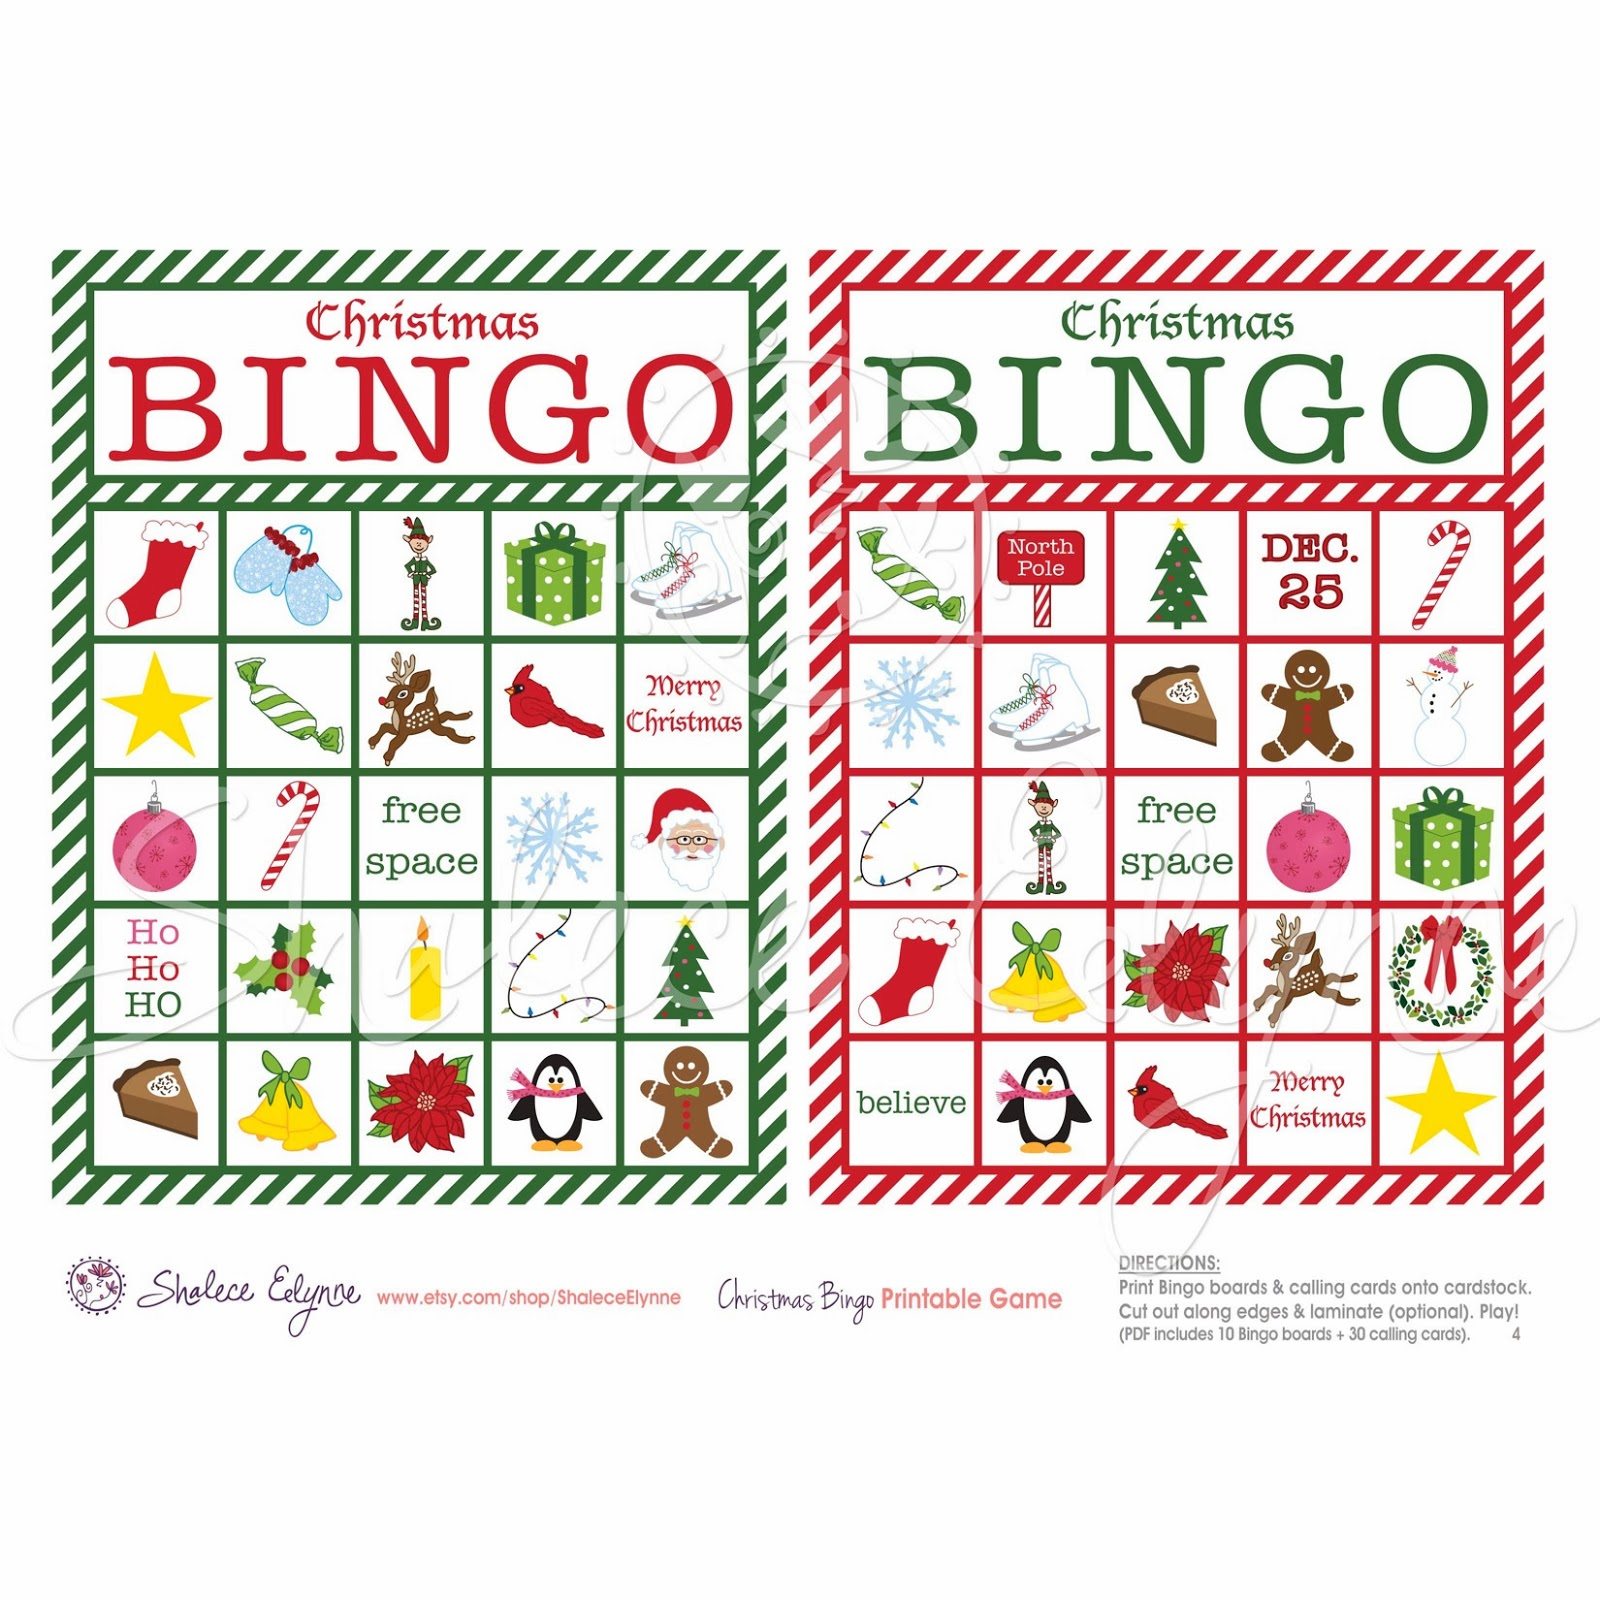 christian christmas bingo - photo #21